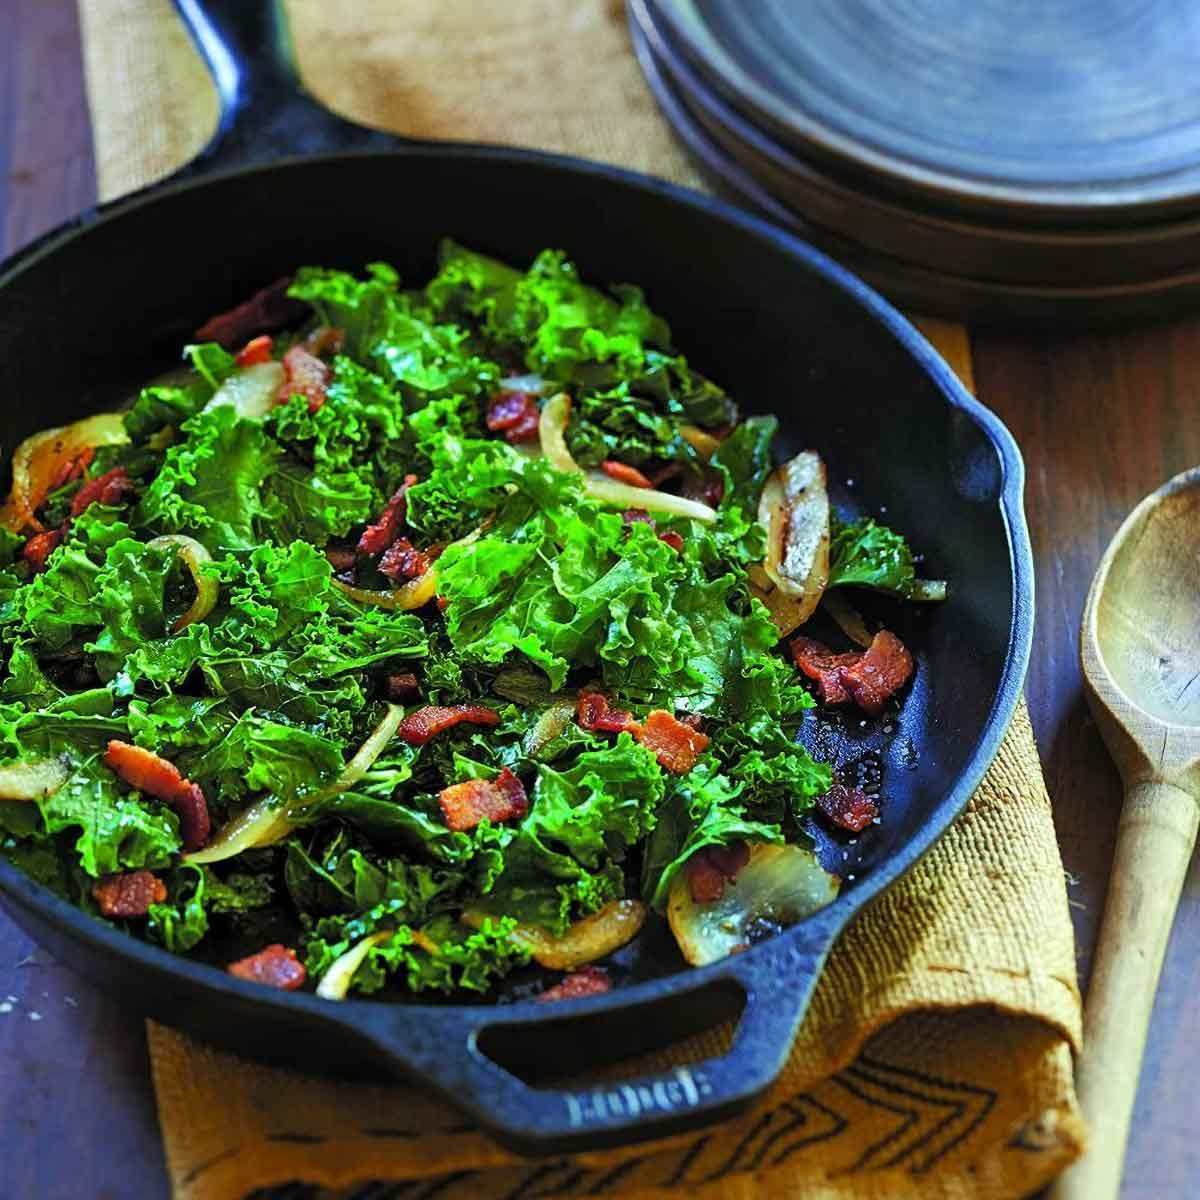 Lodge Pre-Seasoned Cast Iron Skillet With Assist Handle with greens in it.